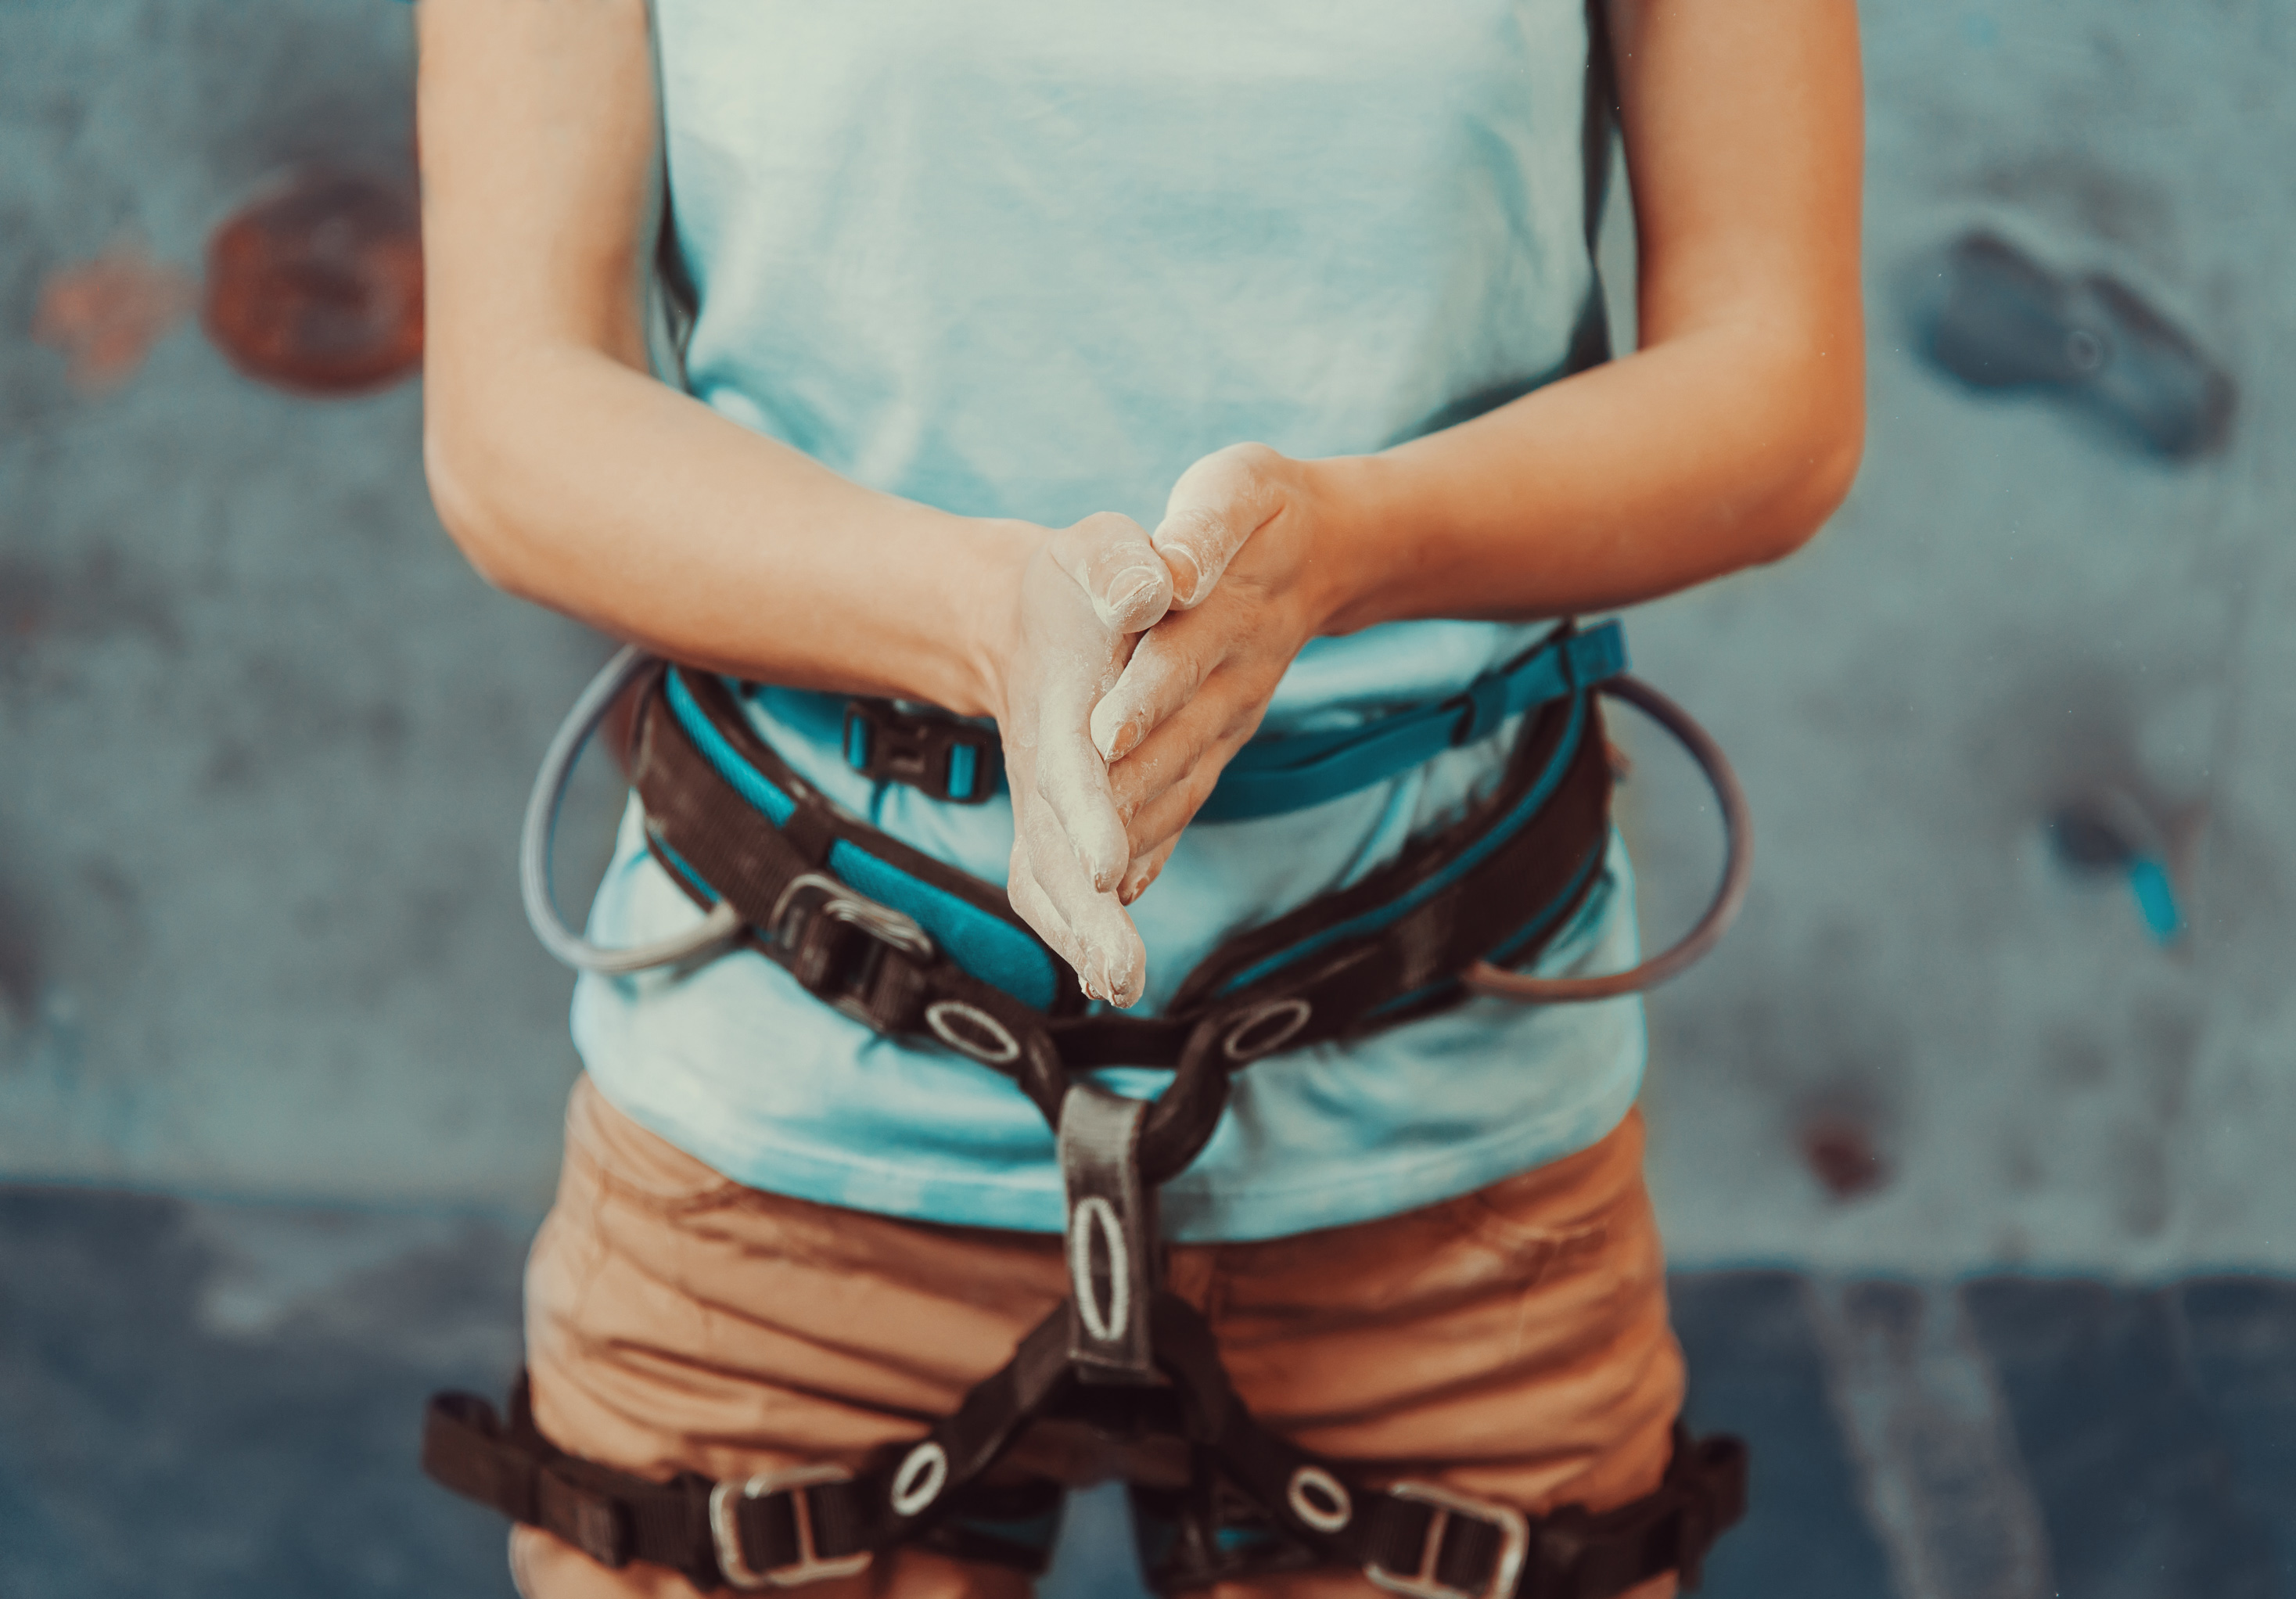 Climbing Guide For Beginners - women clapping her hands together in a climbing harness on the ground